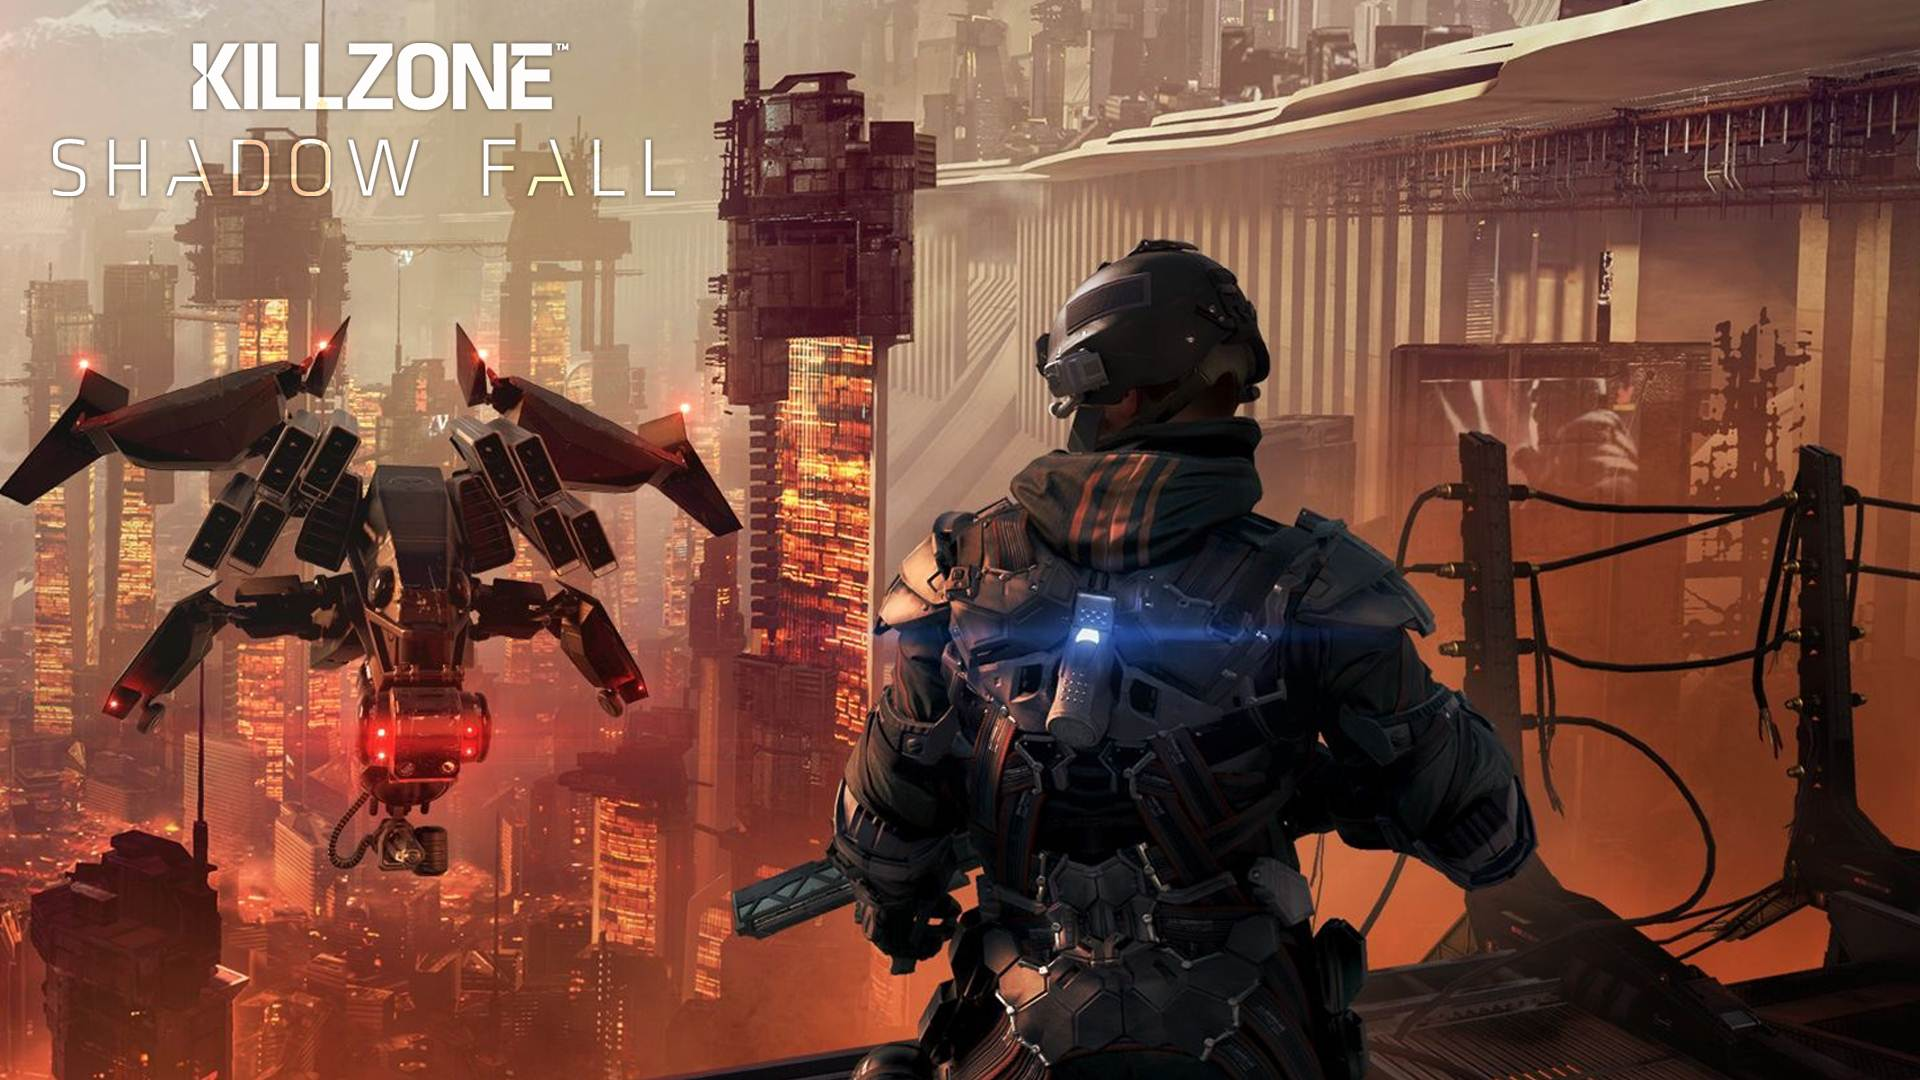 1376107437_killzone-shadow-fall-ps4-wallpaper